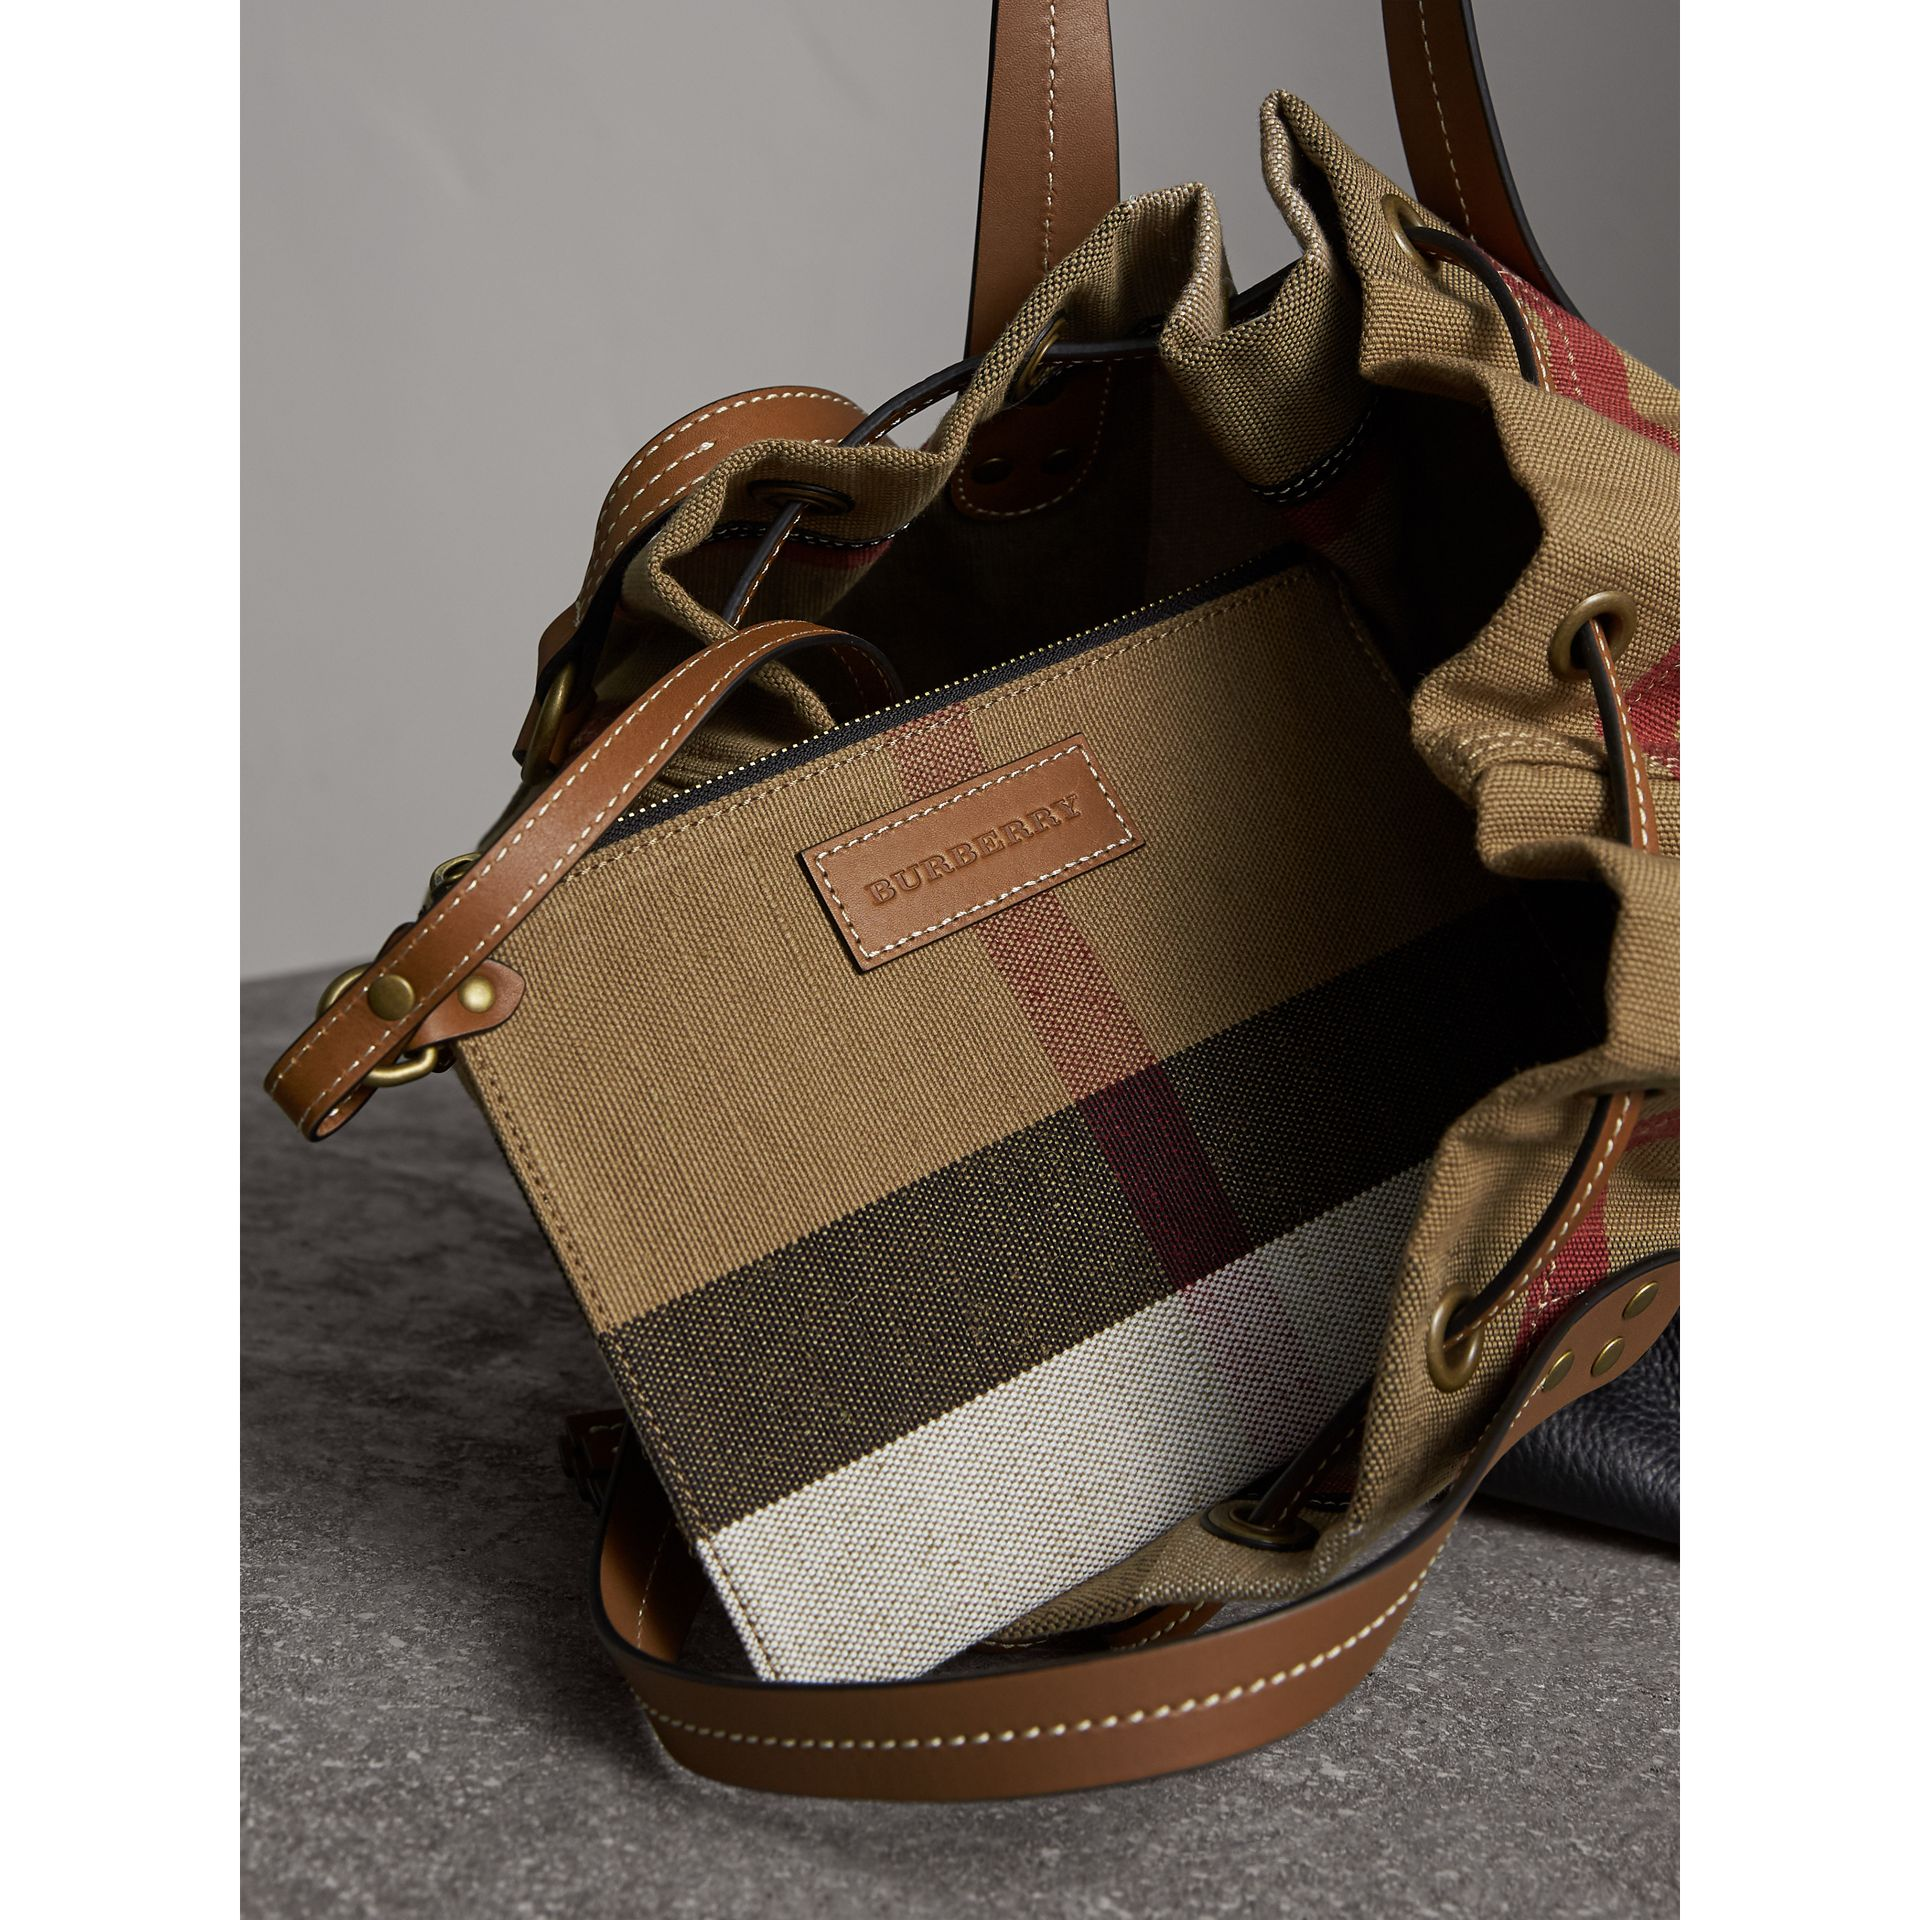 Medium Canvas Check Bucket Bag in Tan - Women | Burberry - gallery image 5